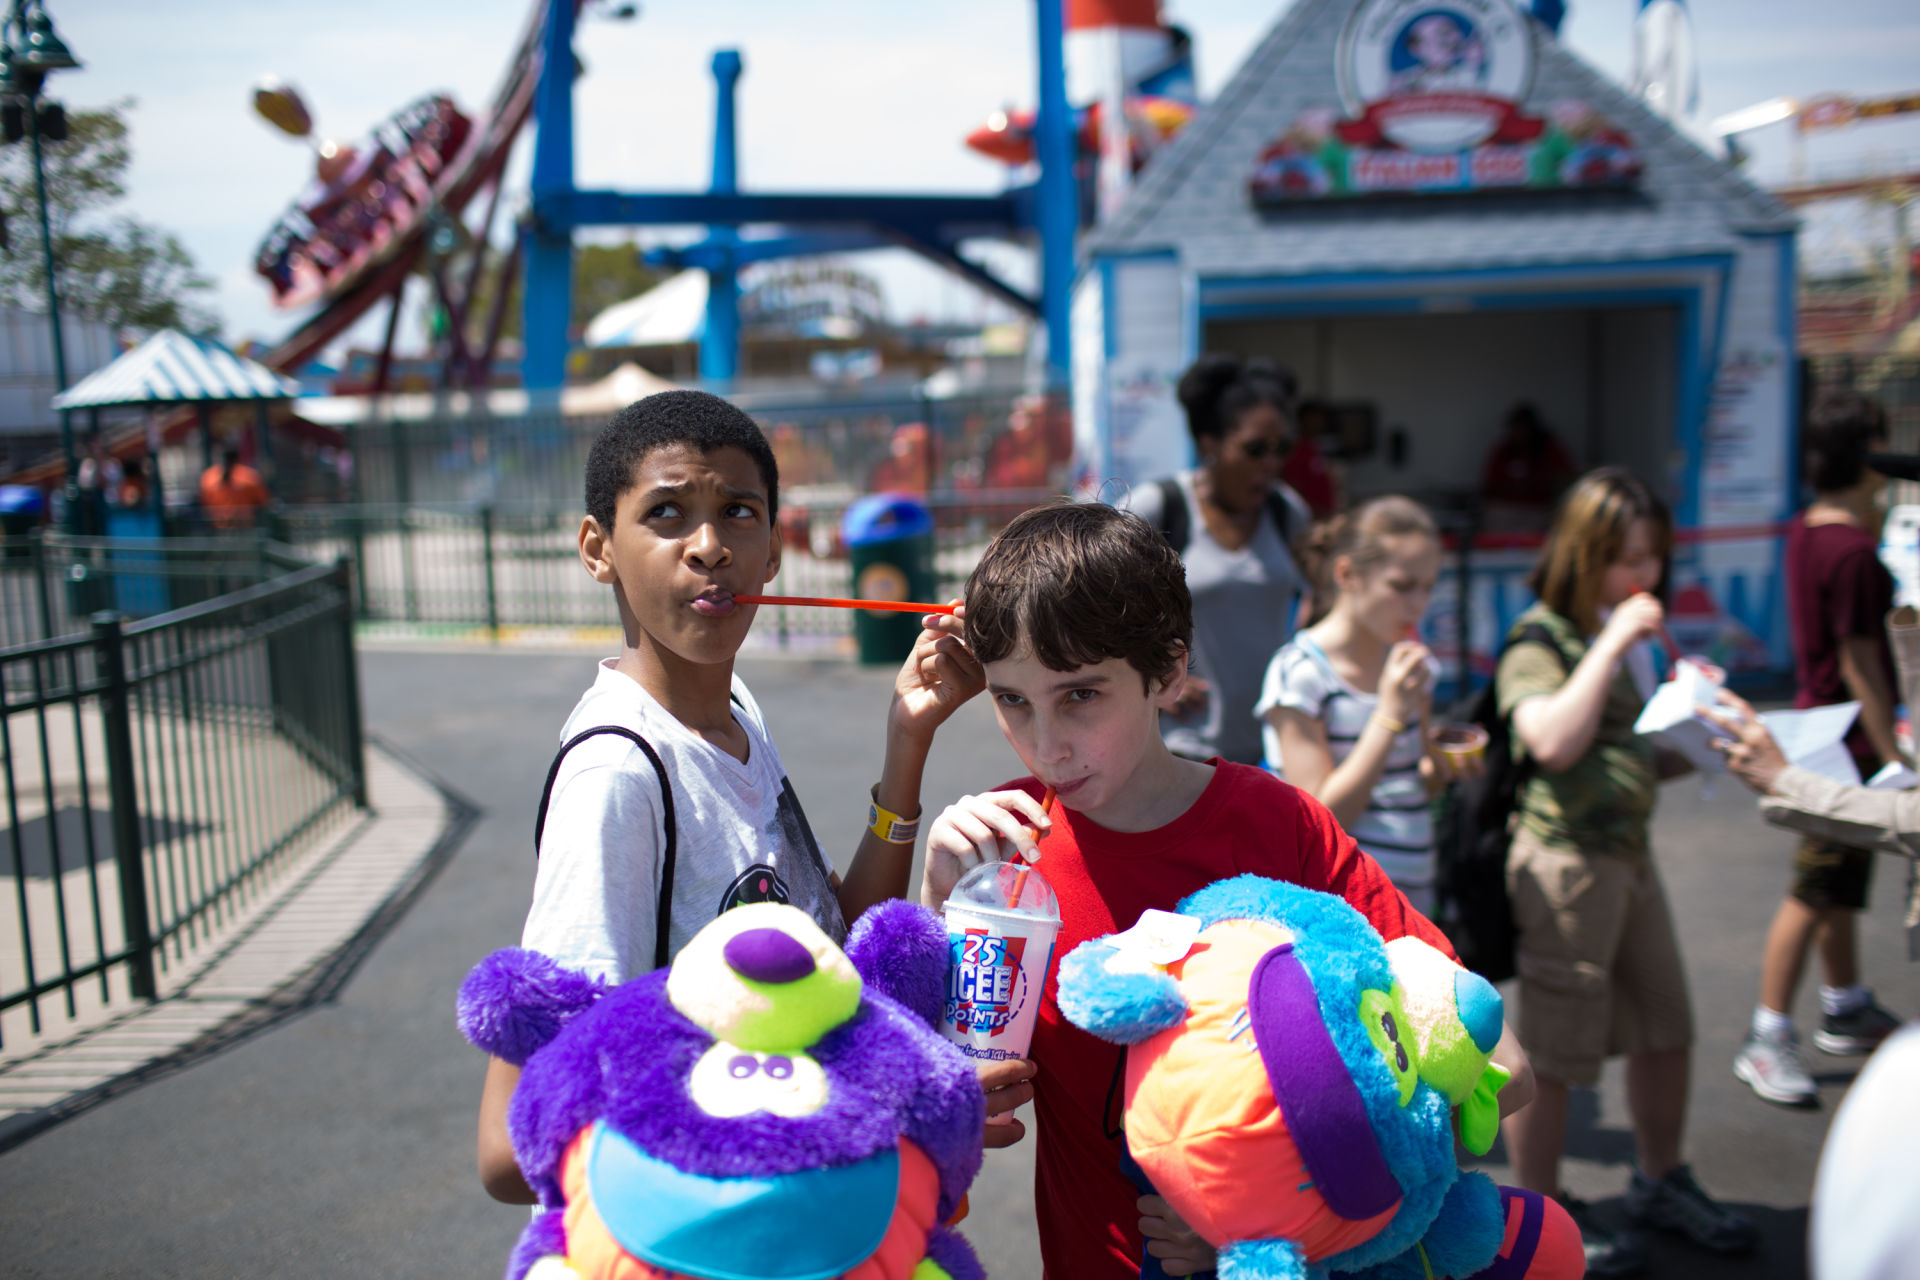 Students Terrell Gantt, left, and Etai Kurtzman, 12, share an Icee during a class trip to Coney Island in Brooklyn, NY May 28, 2015. The group of students from Quest to Learn School took the day trip to Coney Island to analyze user experience on games and rides at Luna Park as part of  their late-spring school curriculum.